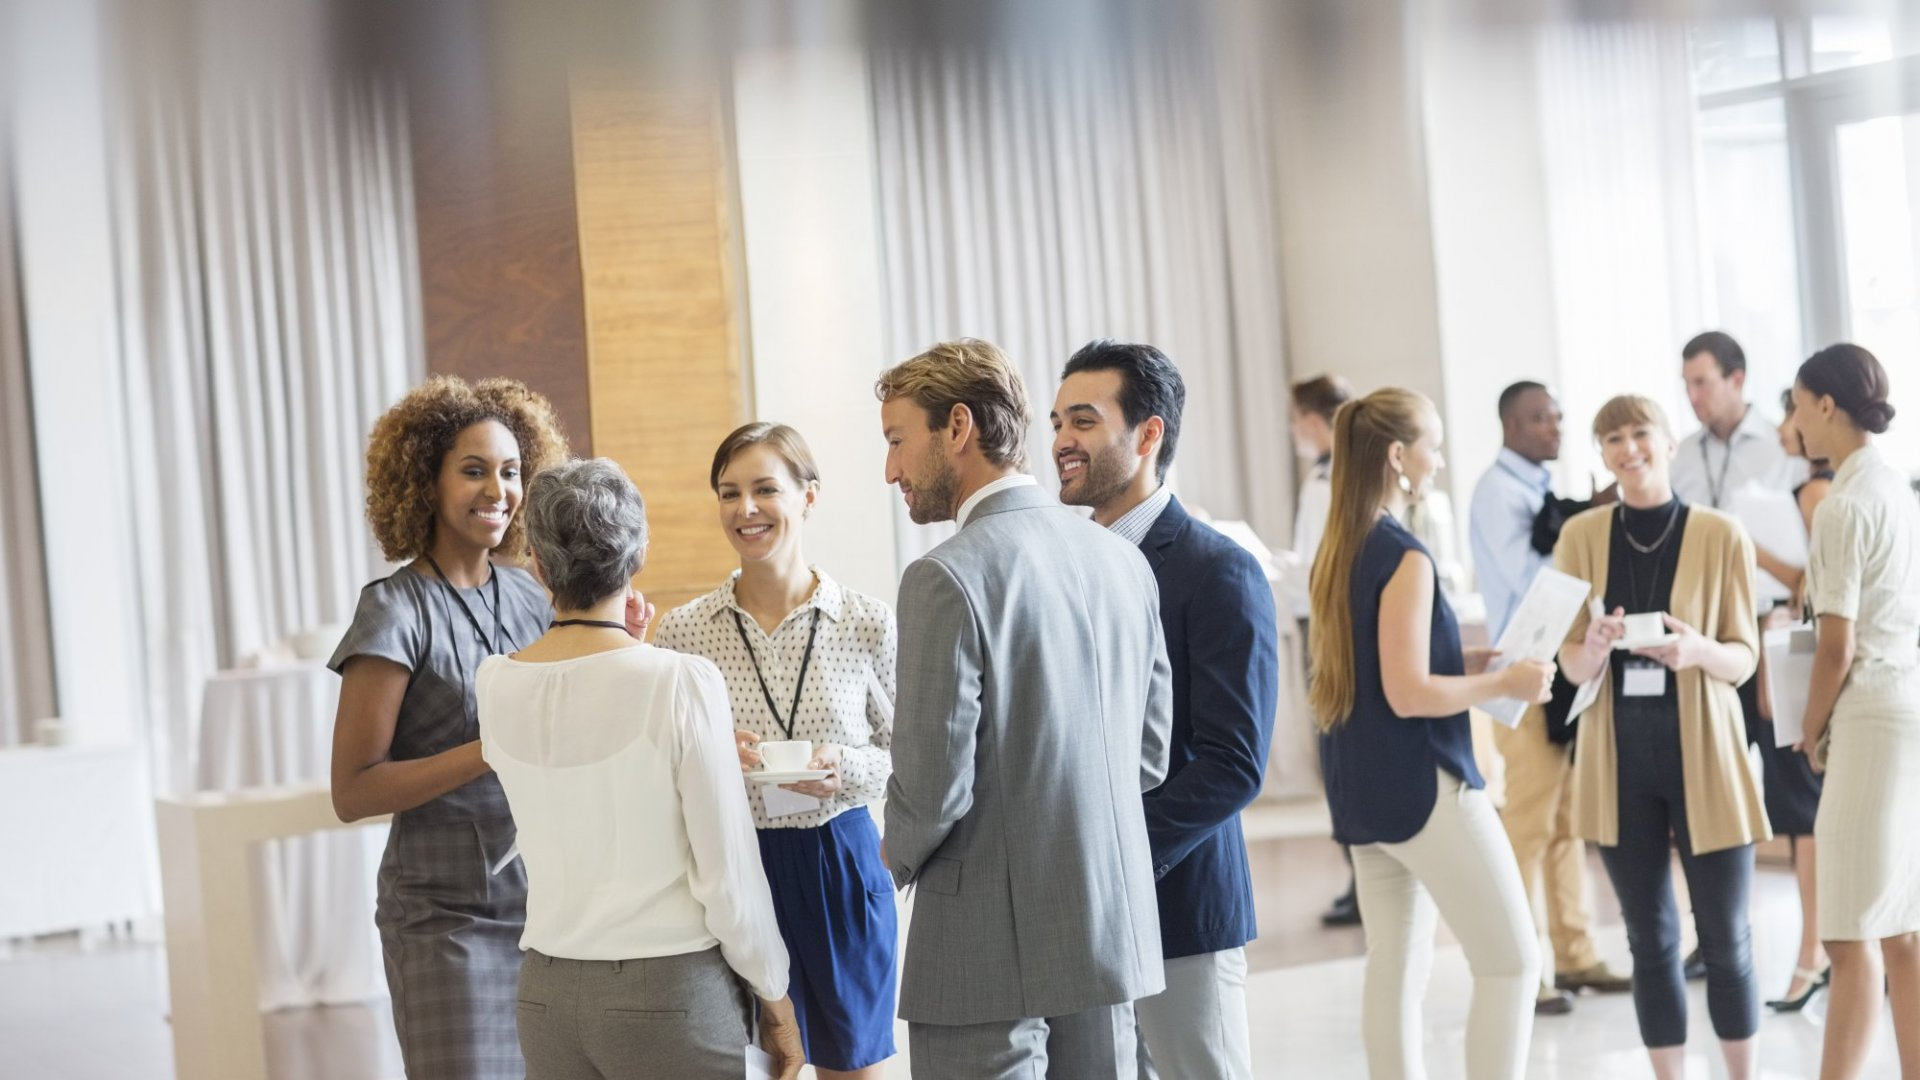 4 Networking Mistakes That Are Killing Your Reputation